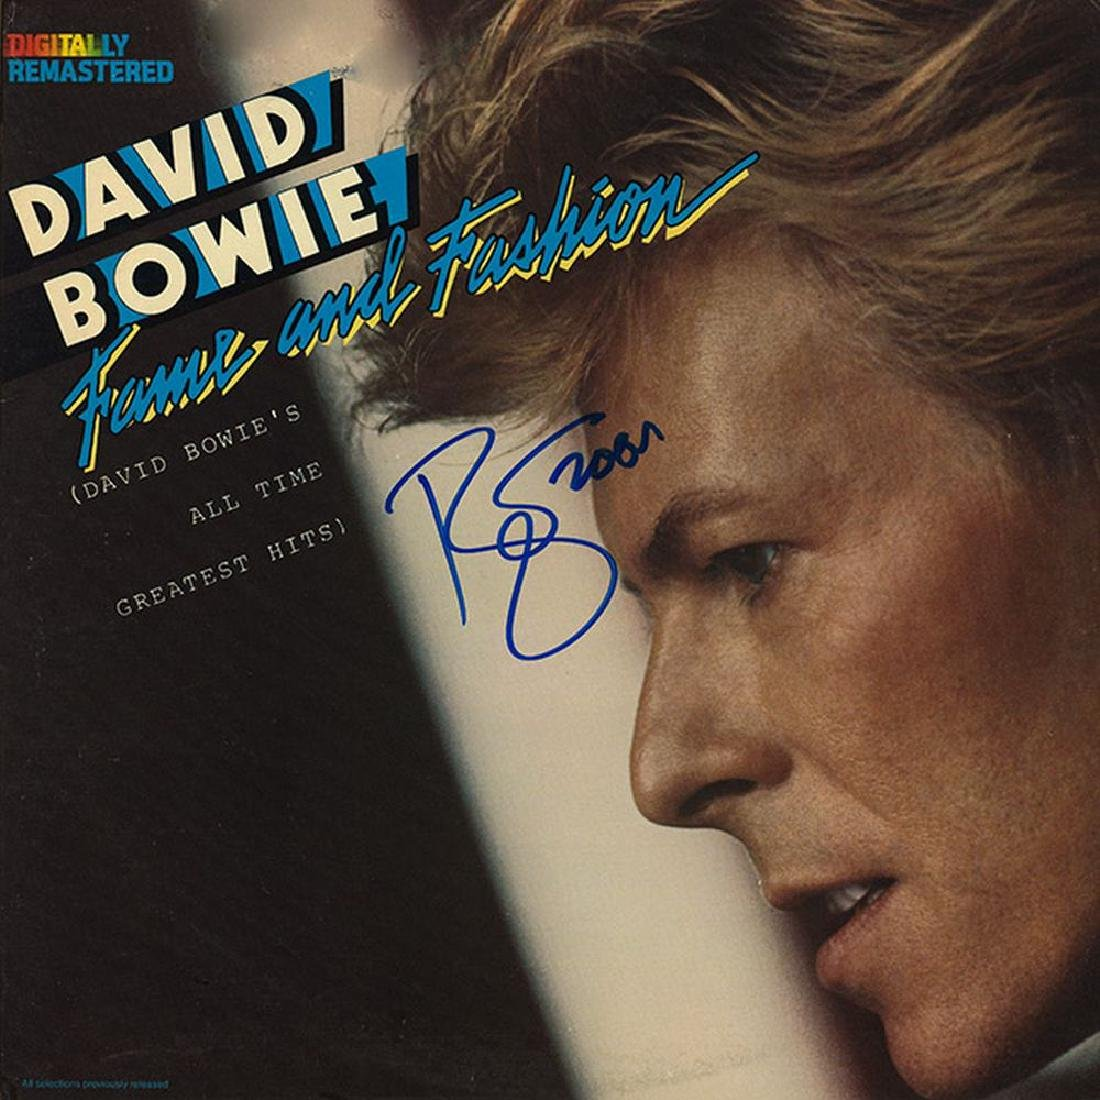 David Bowie Signed Fame And Fashion Album